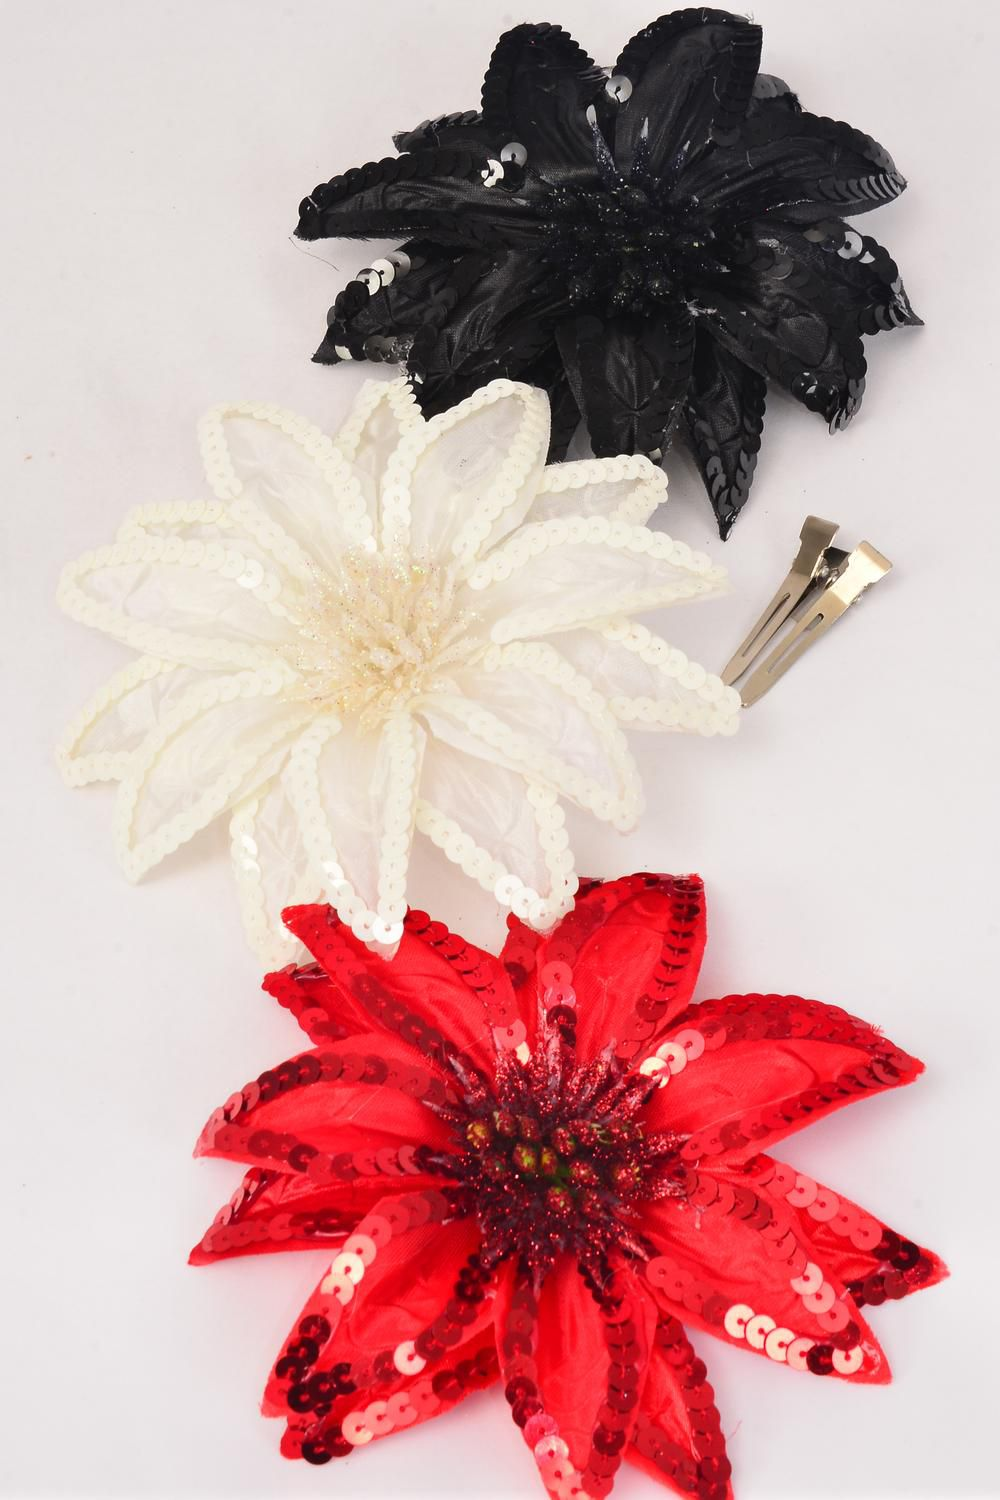 "Sequin Flower Jumbo Poinsetta Red Black Beige Mix Alligator Clip/DZ Size-6"" Wide,Alligator Clip & Brooch,4  of each Color Asst,Display Card & UPC Code, Clear Box"